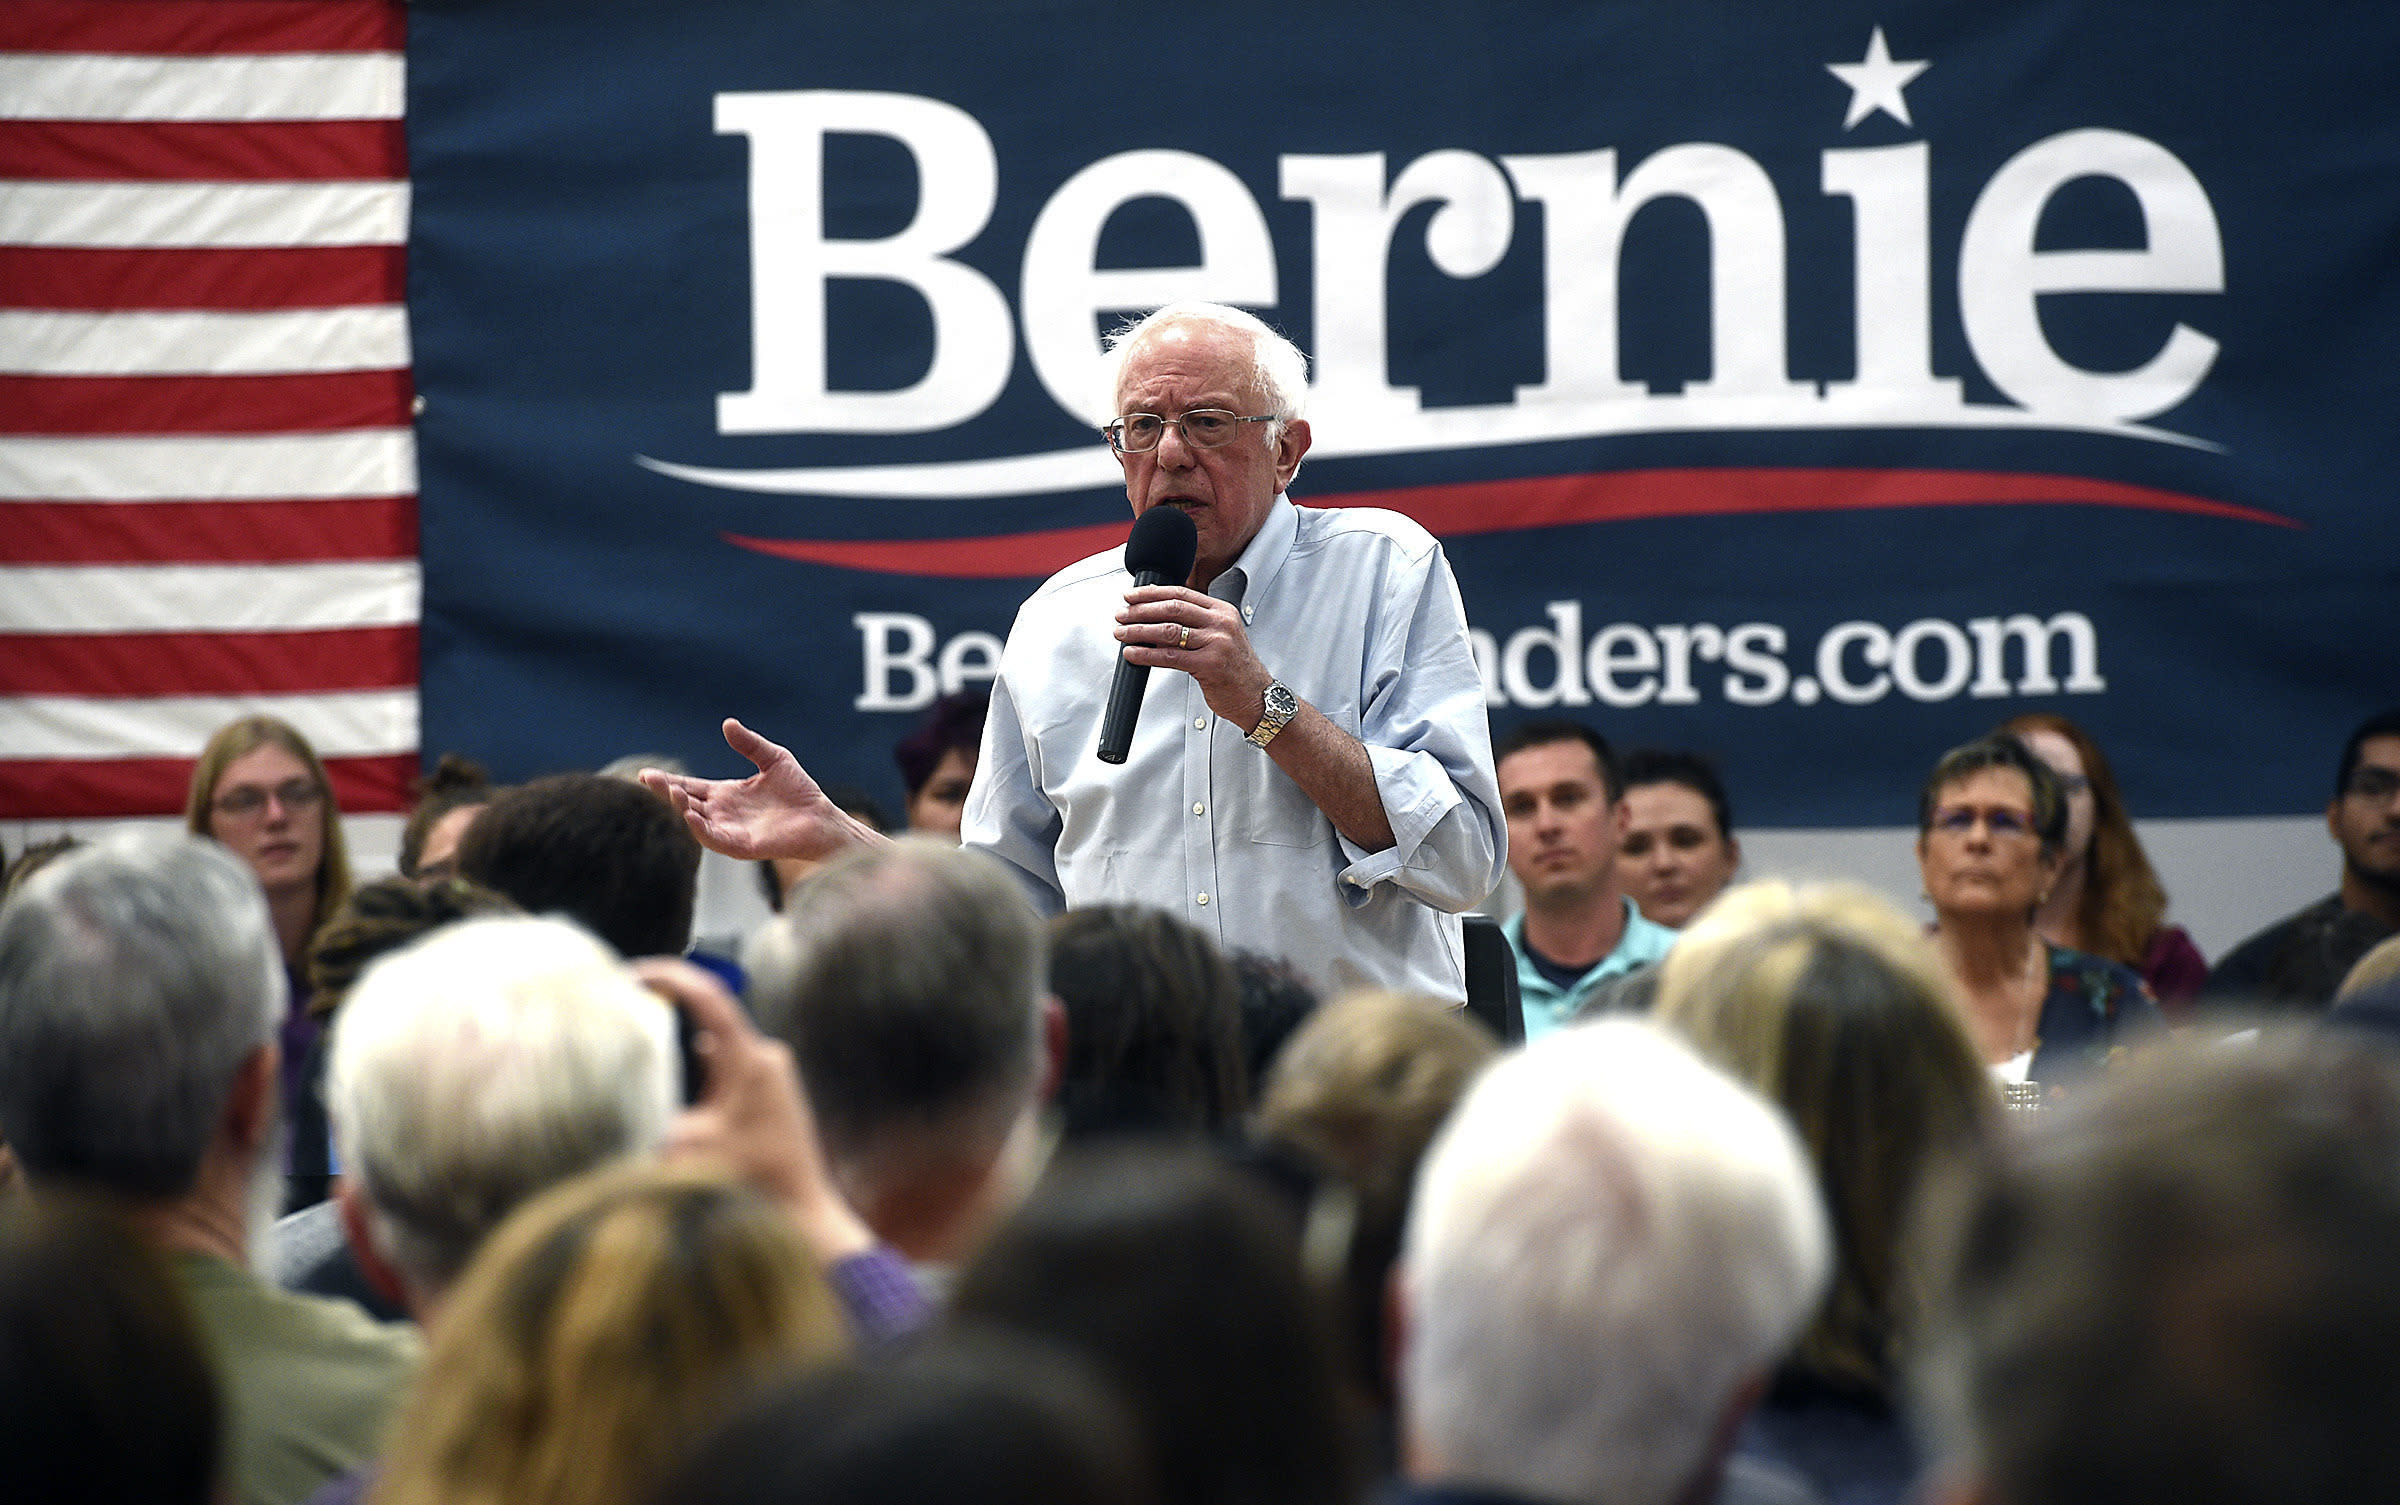 Bernie Sanders leaves campaign trail due ot health issues